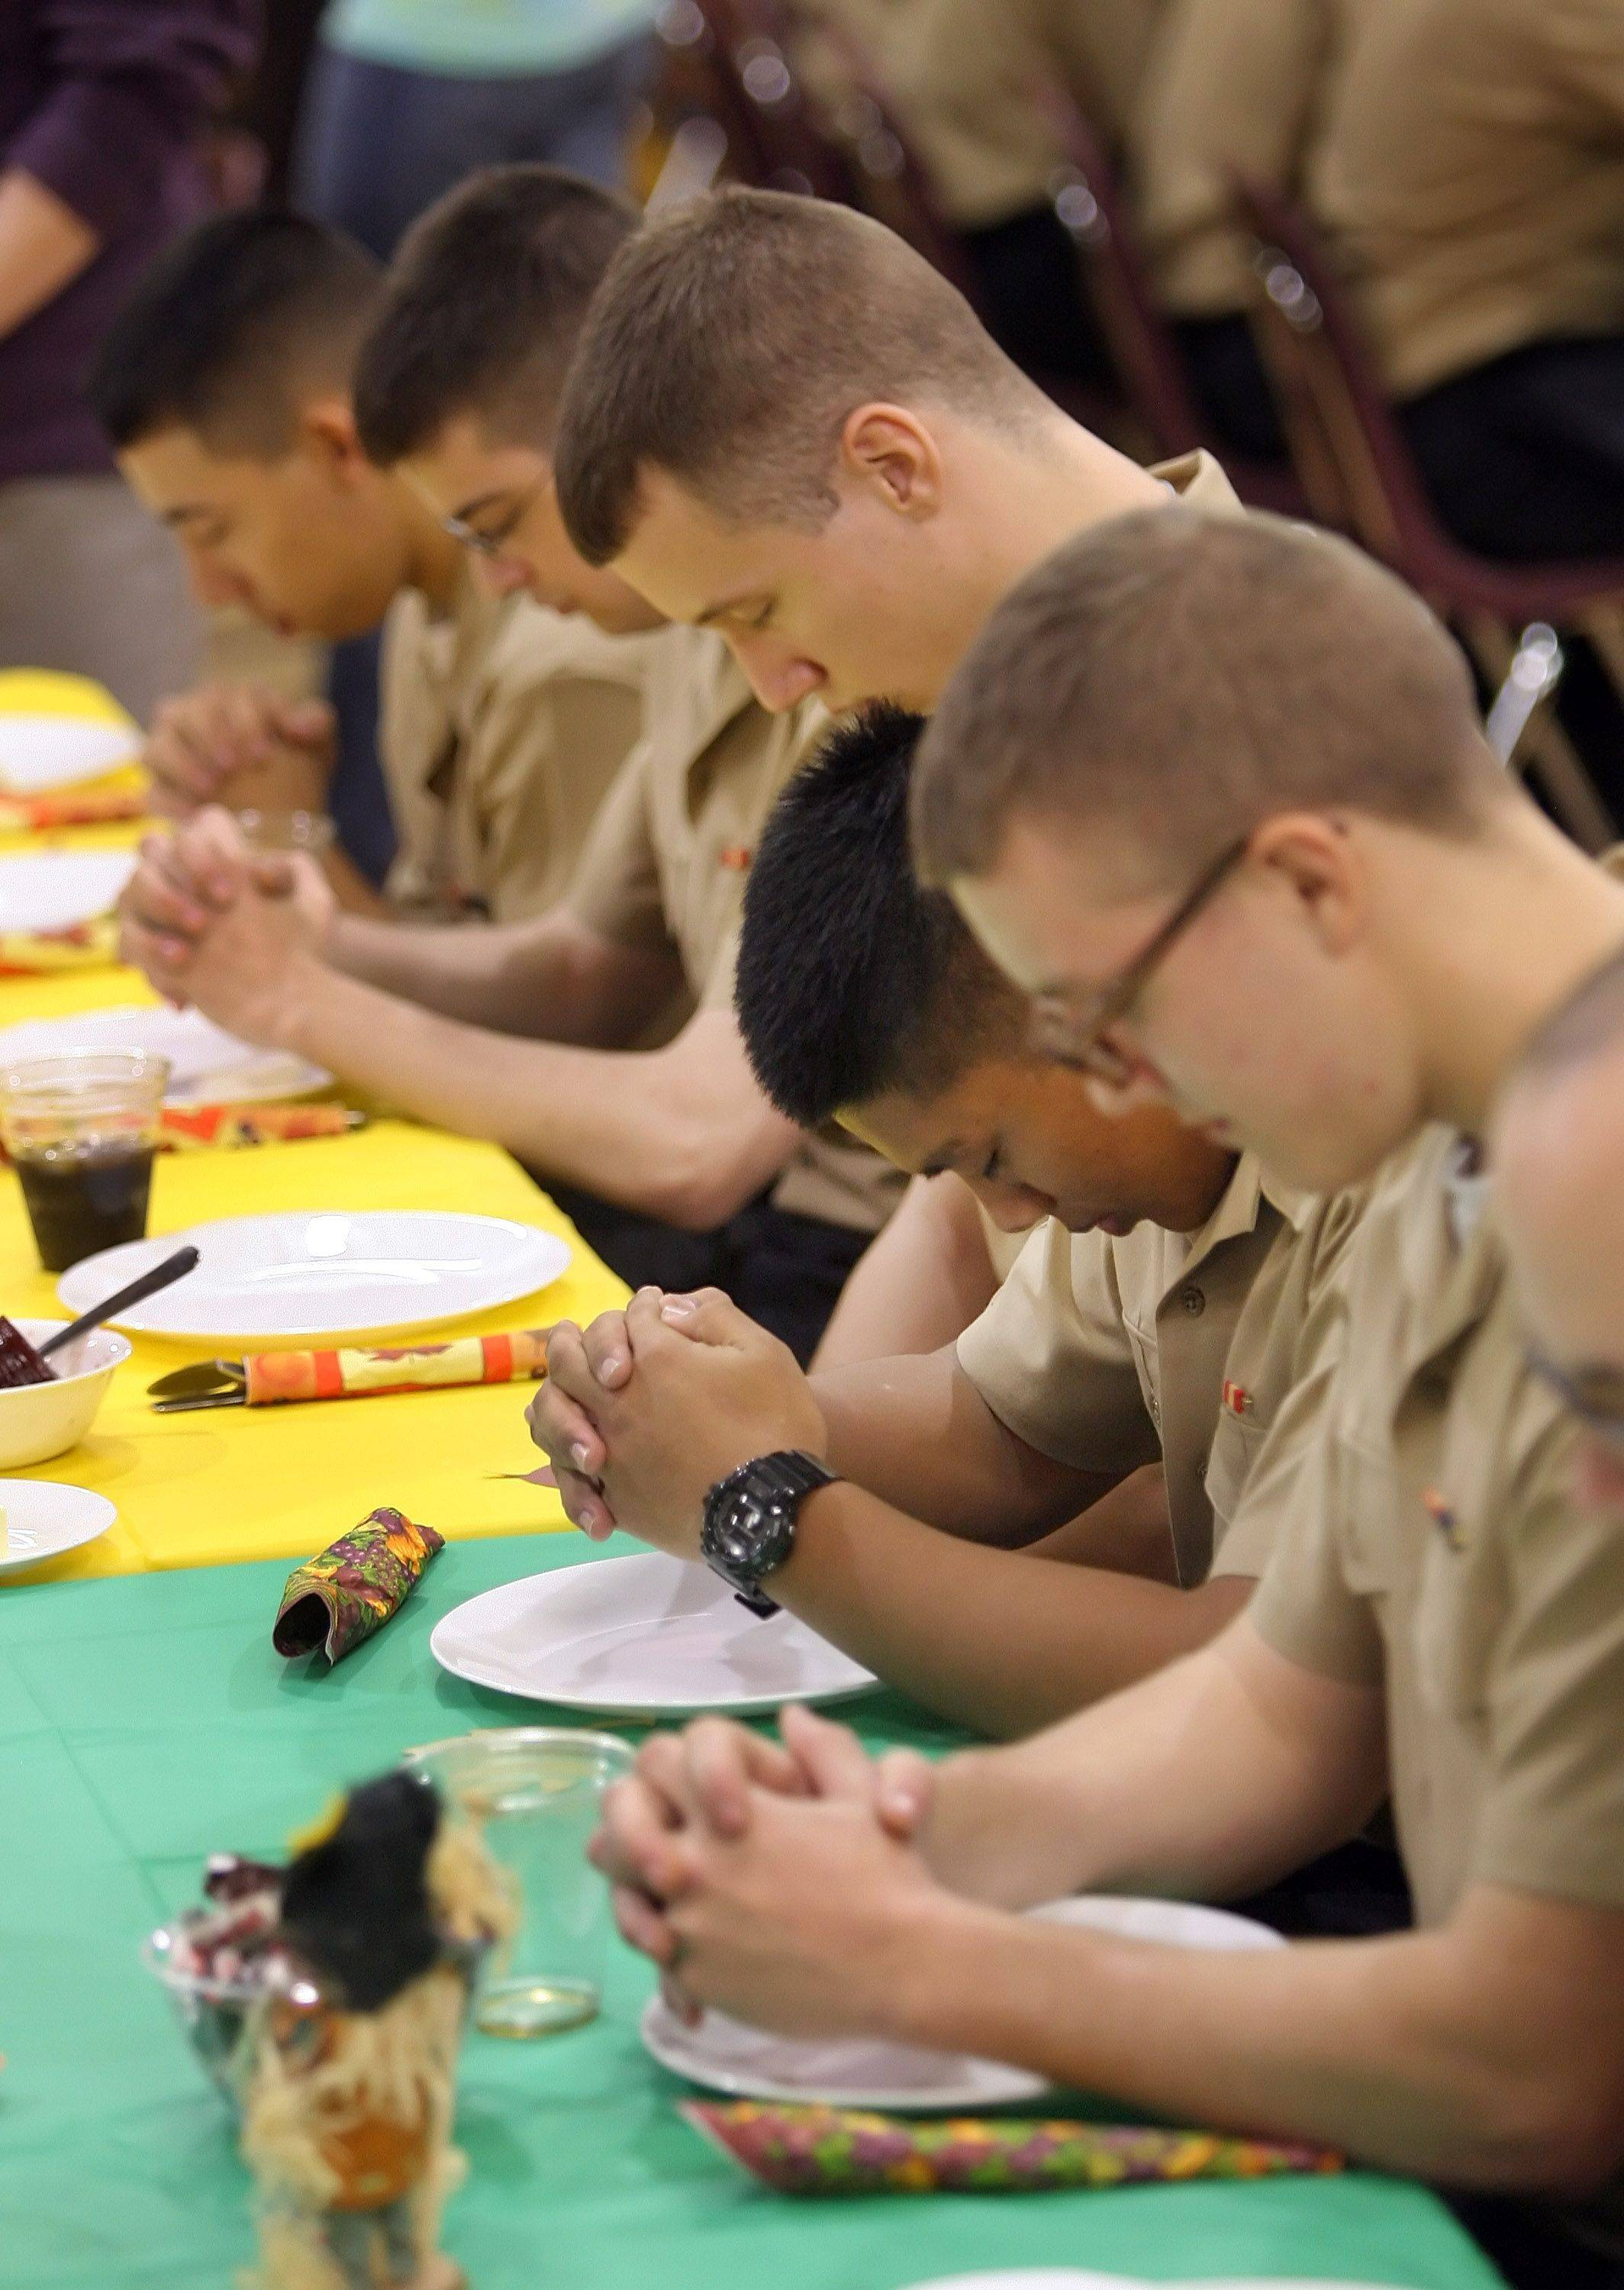 Sailors bow their heads during grace as Gurnee Community Church hosted 193 sailors from Recruit Training Command, Great Lakes for Thanksgiving dinner Thursday afternoon in Gurnee.